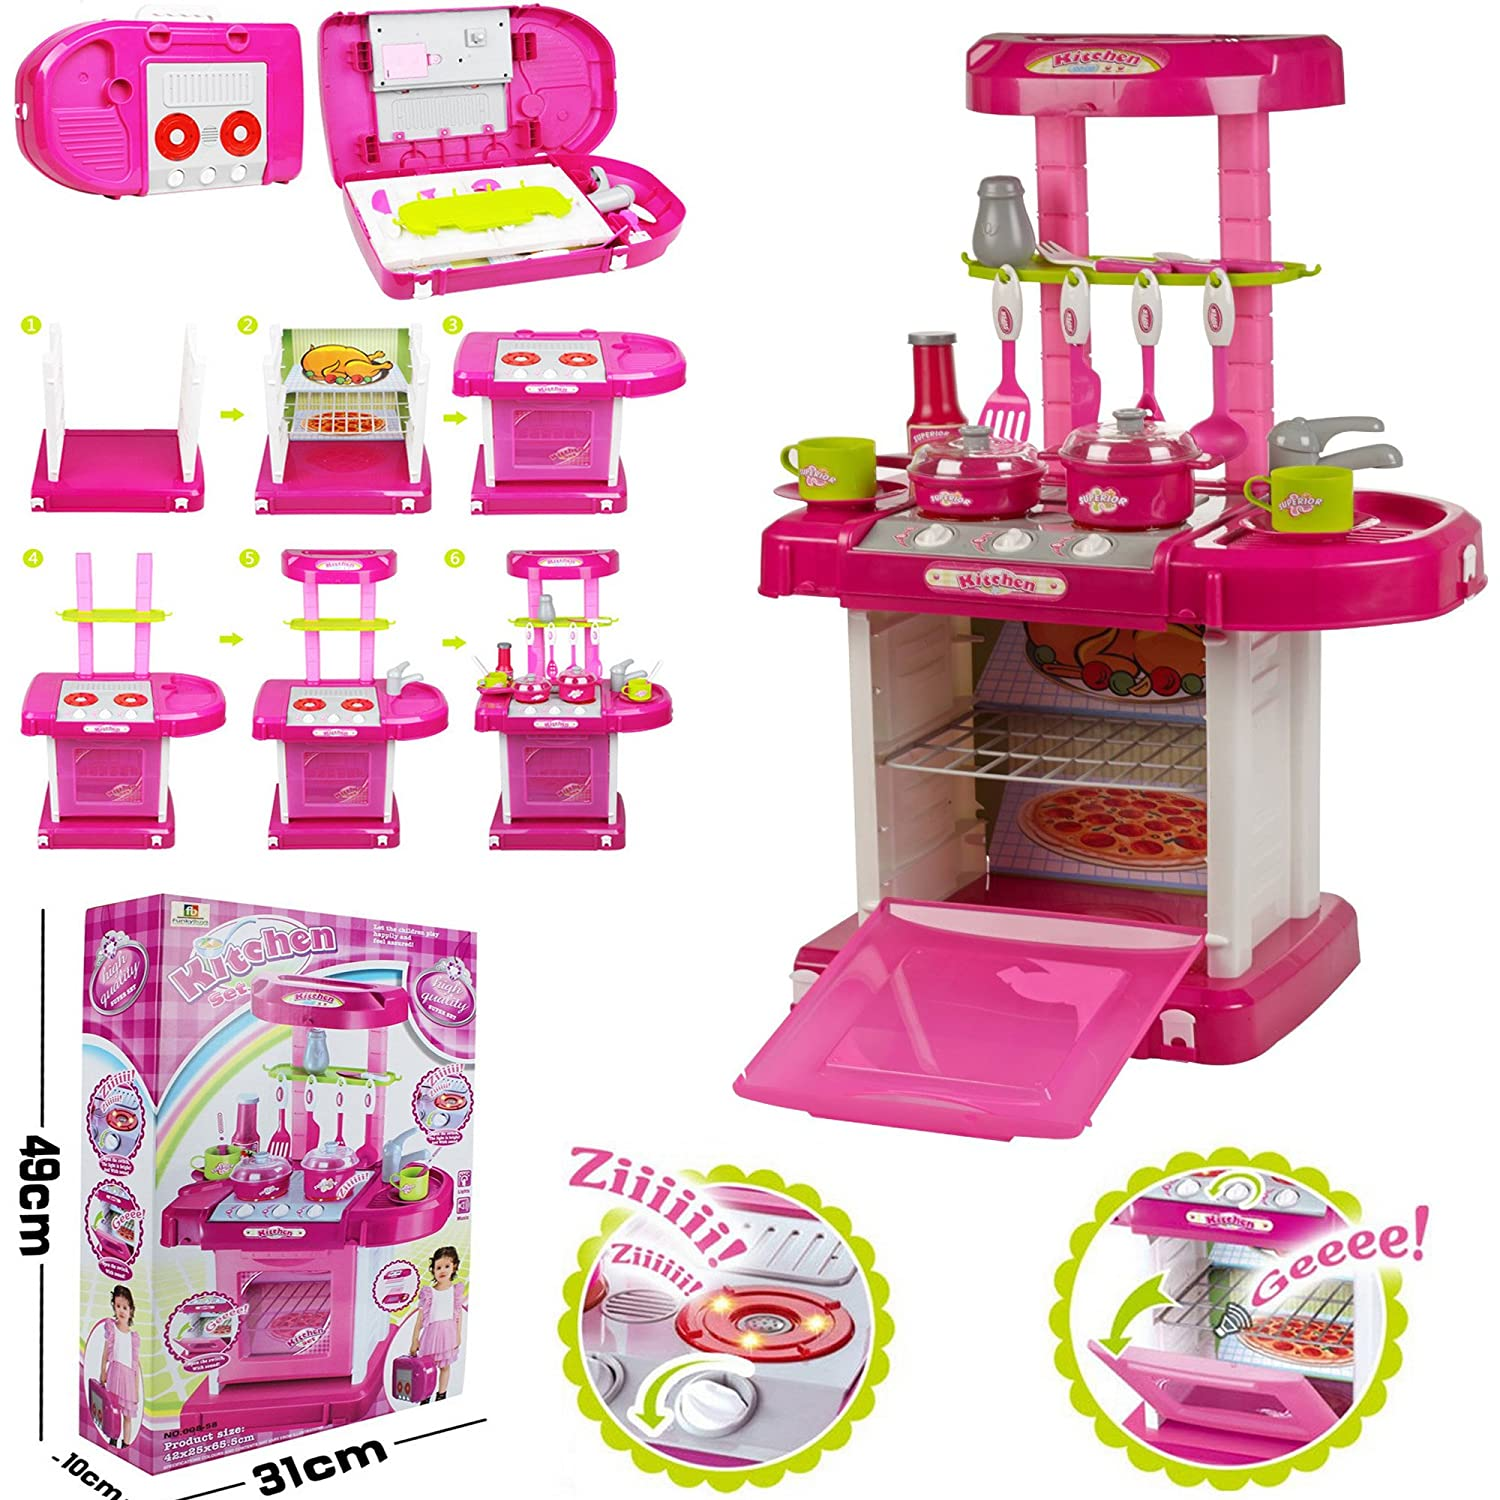 kids children portable pink electronic kitchen cooking girl toy